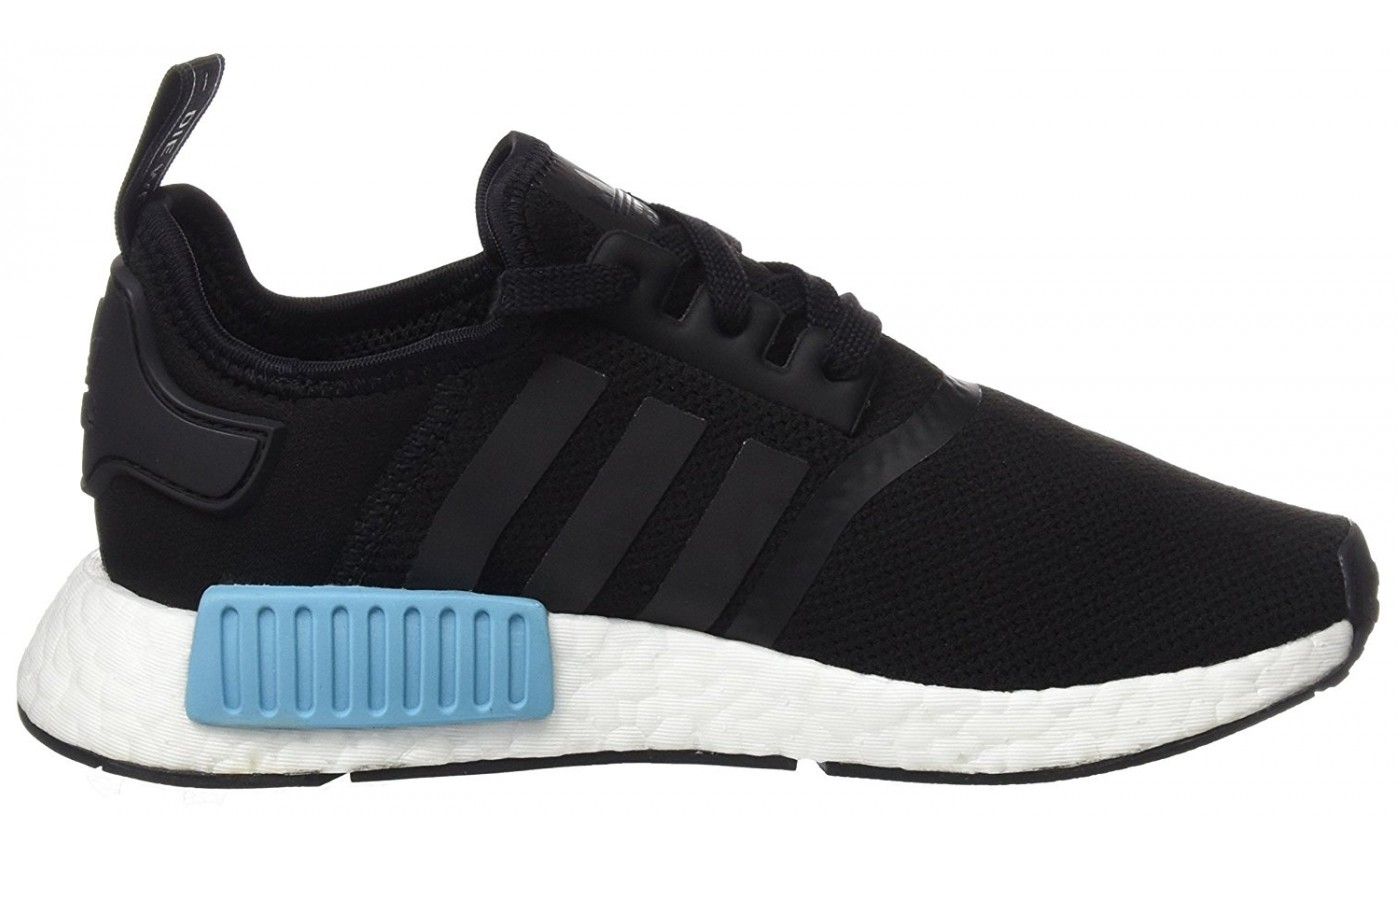 2af652211ac8 Adidas NMD R1 Reviewed   Tested for Performance in 2019